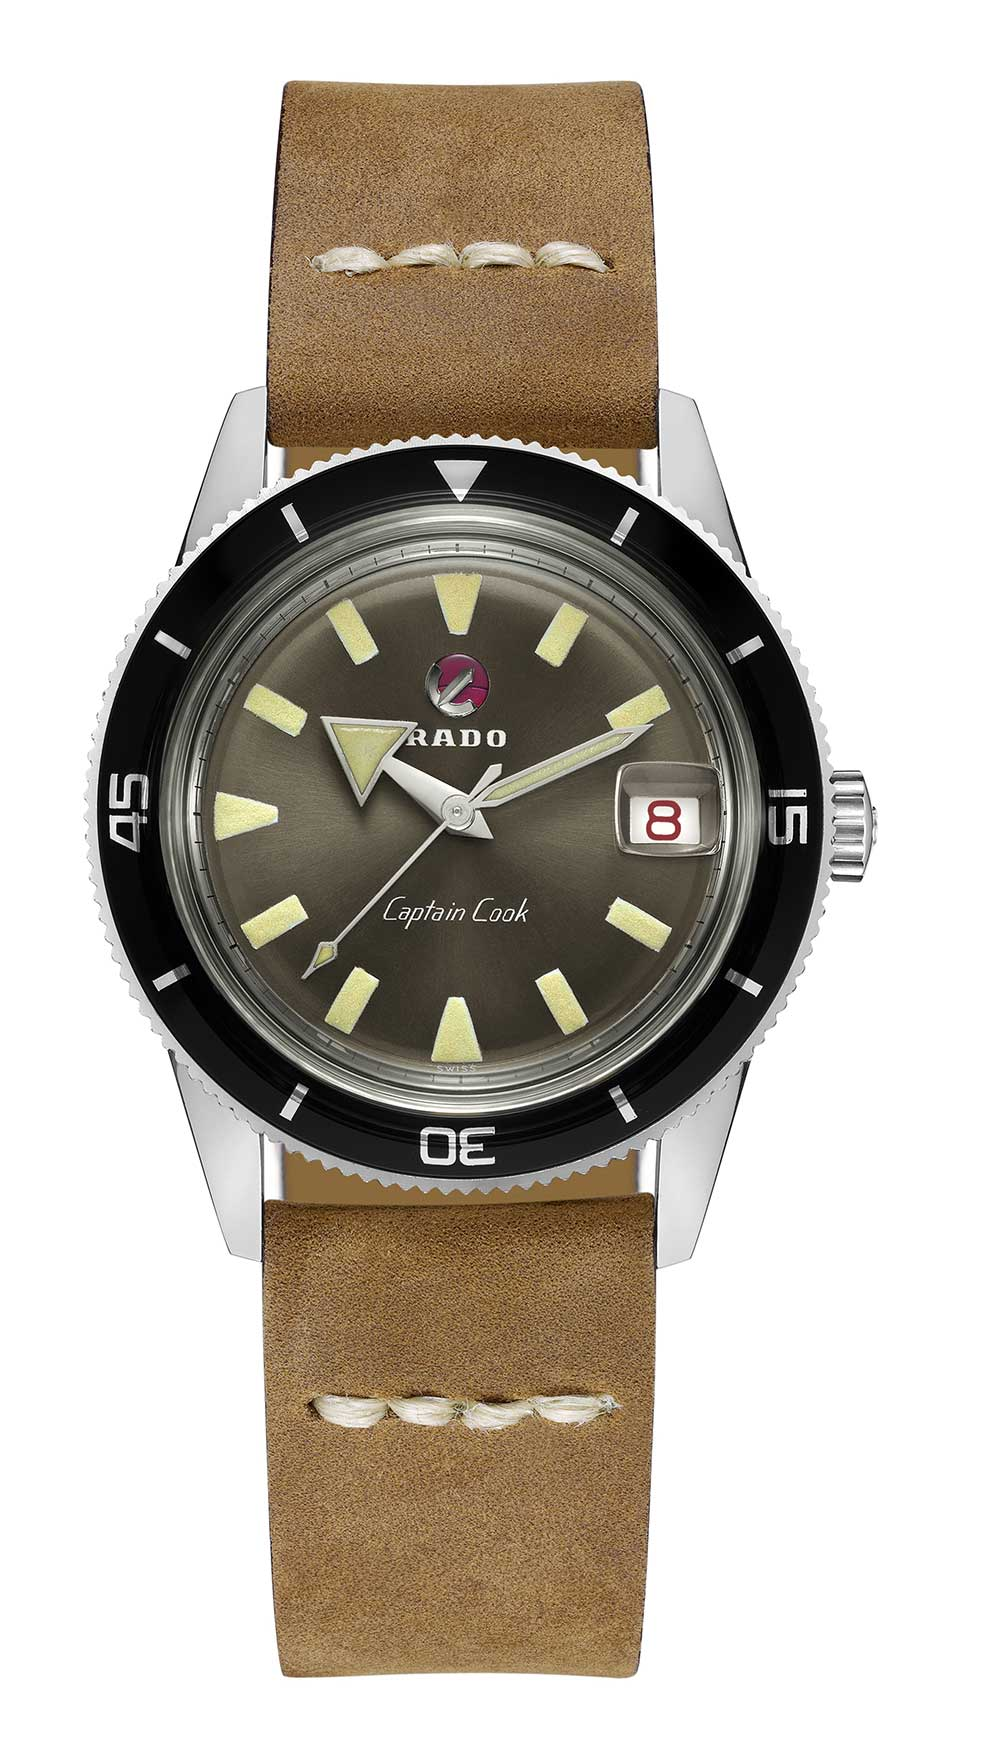 Rado HyperChrome Captain Cook reference 763.0500.3.130